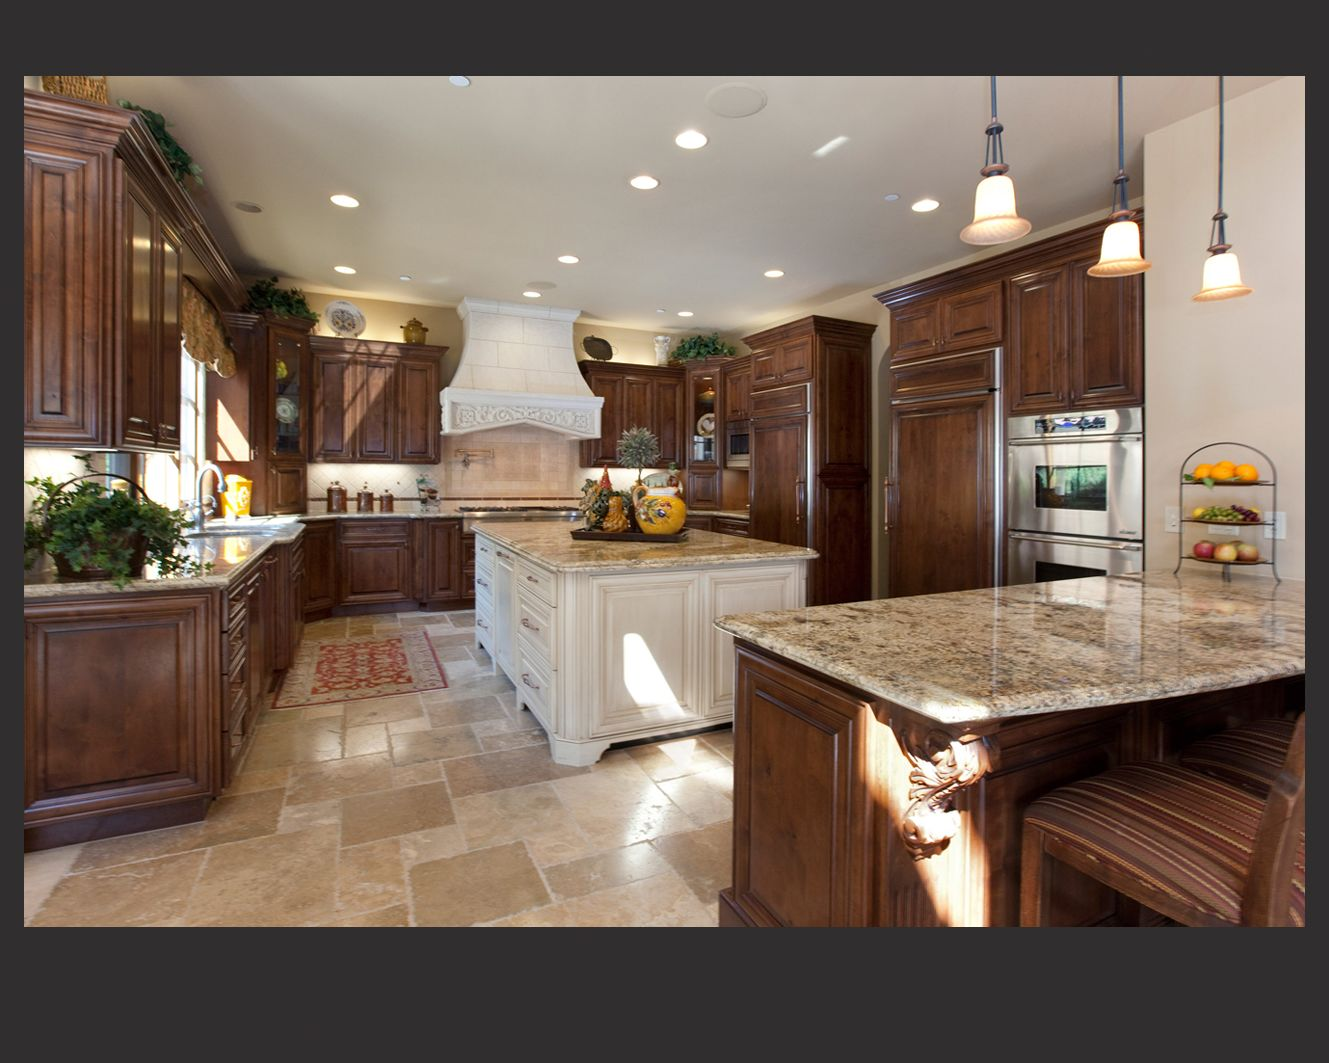 Magnificent kitchen designs with dark cabinets Kitchen designs pictures free